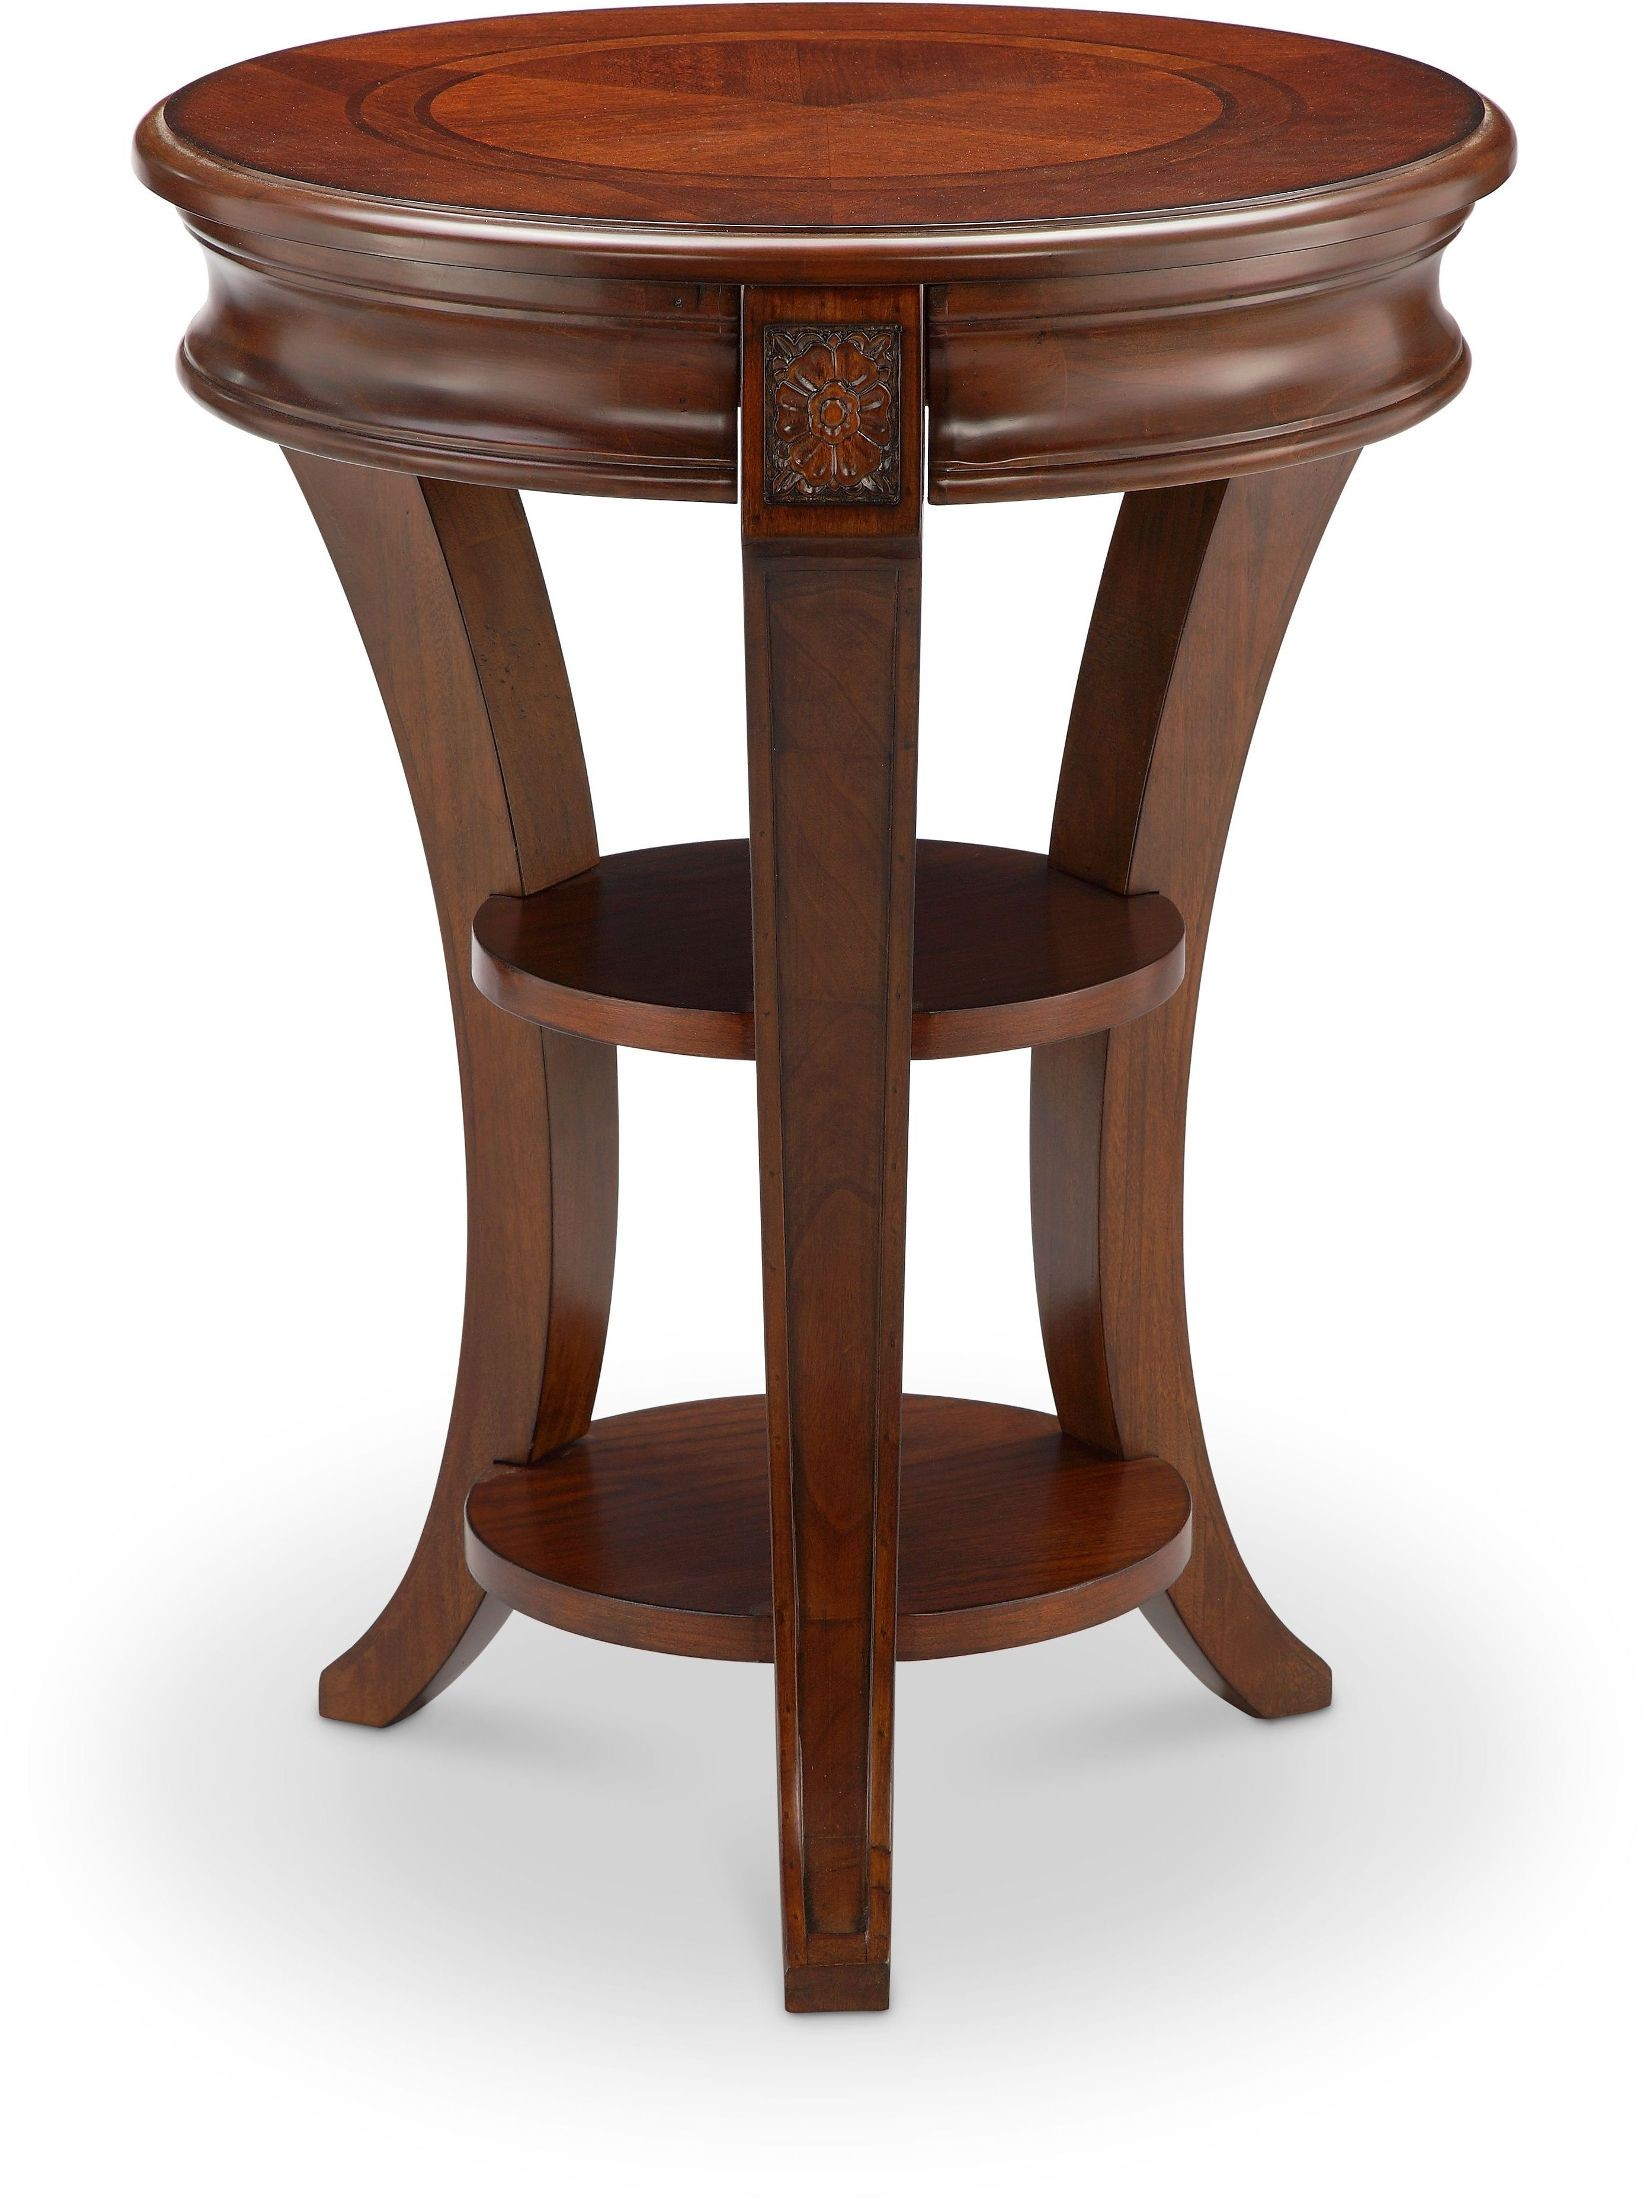 Winslet cherry round accent table t magnussen home